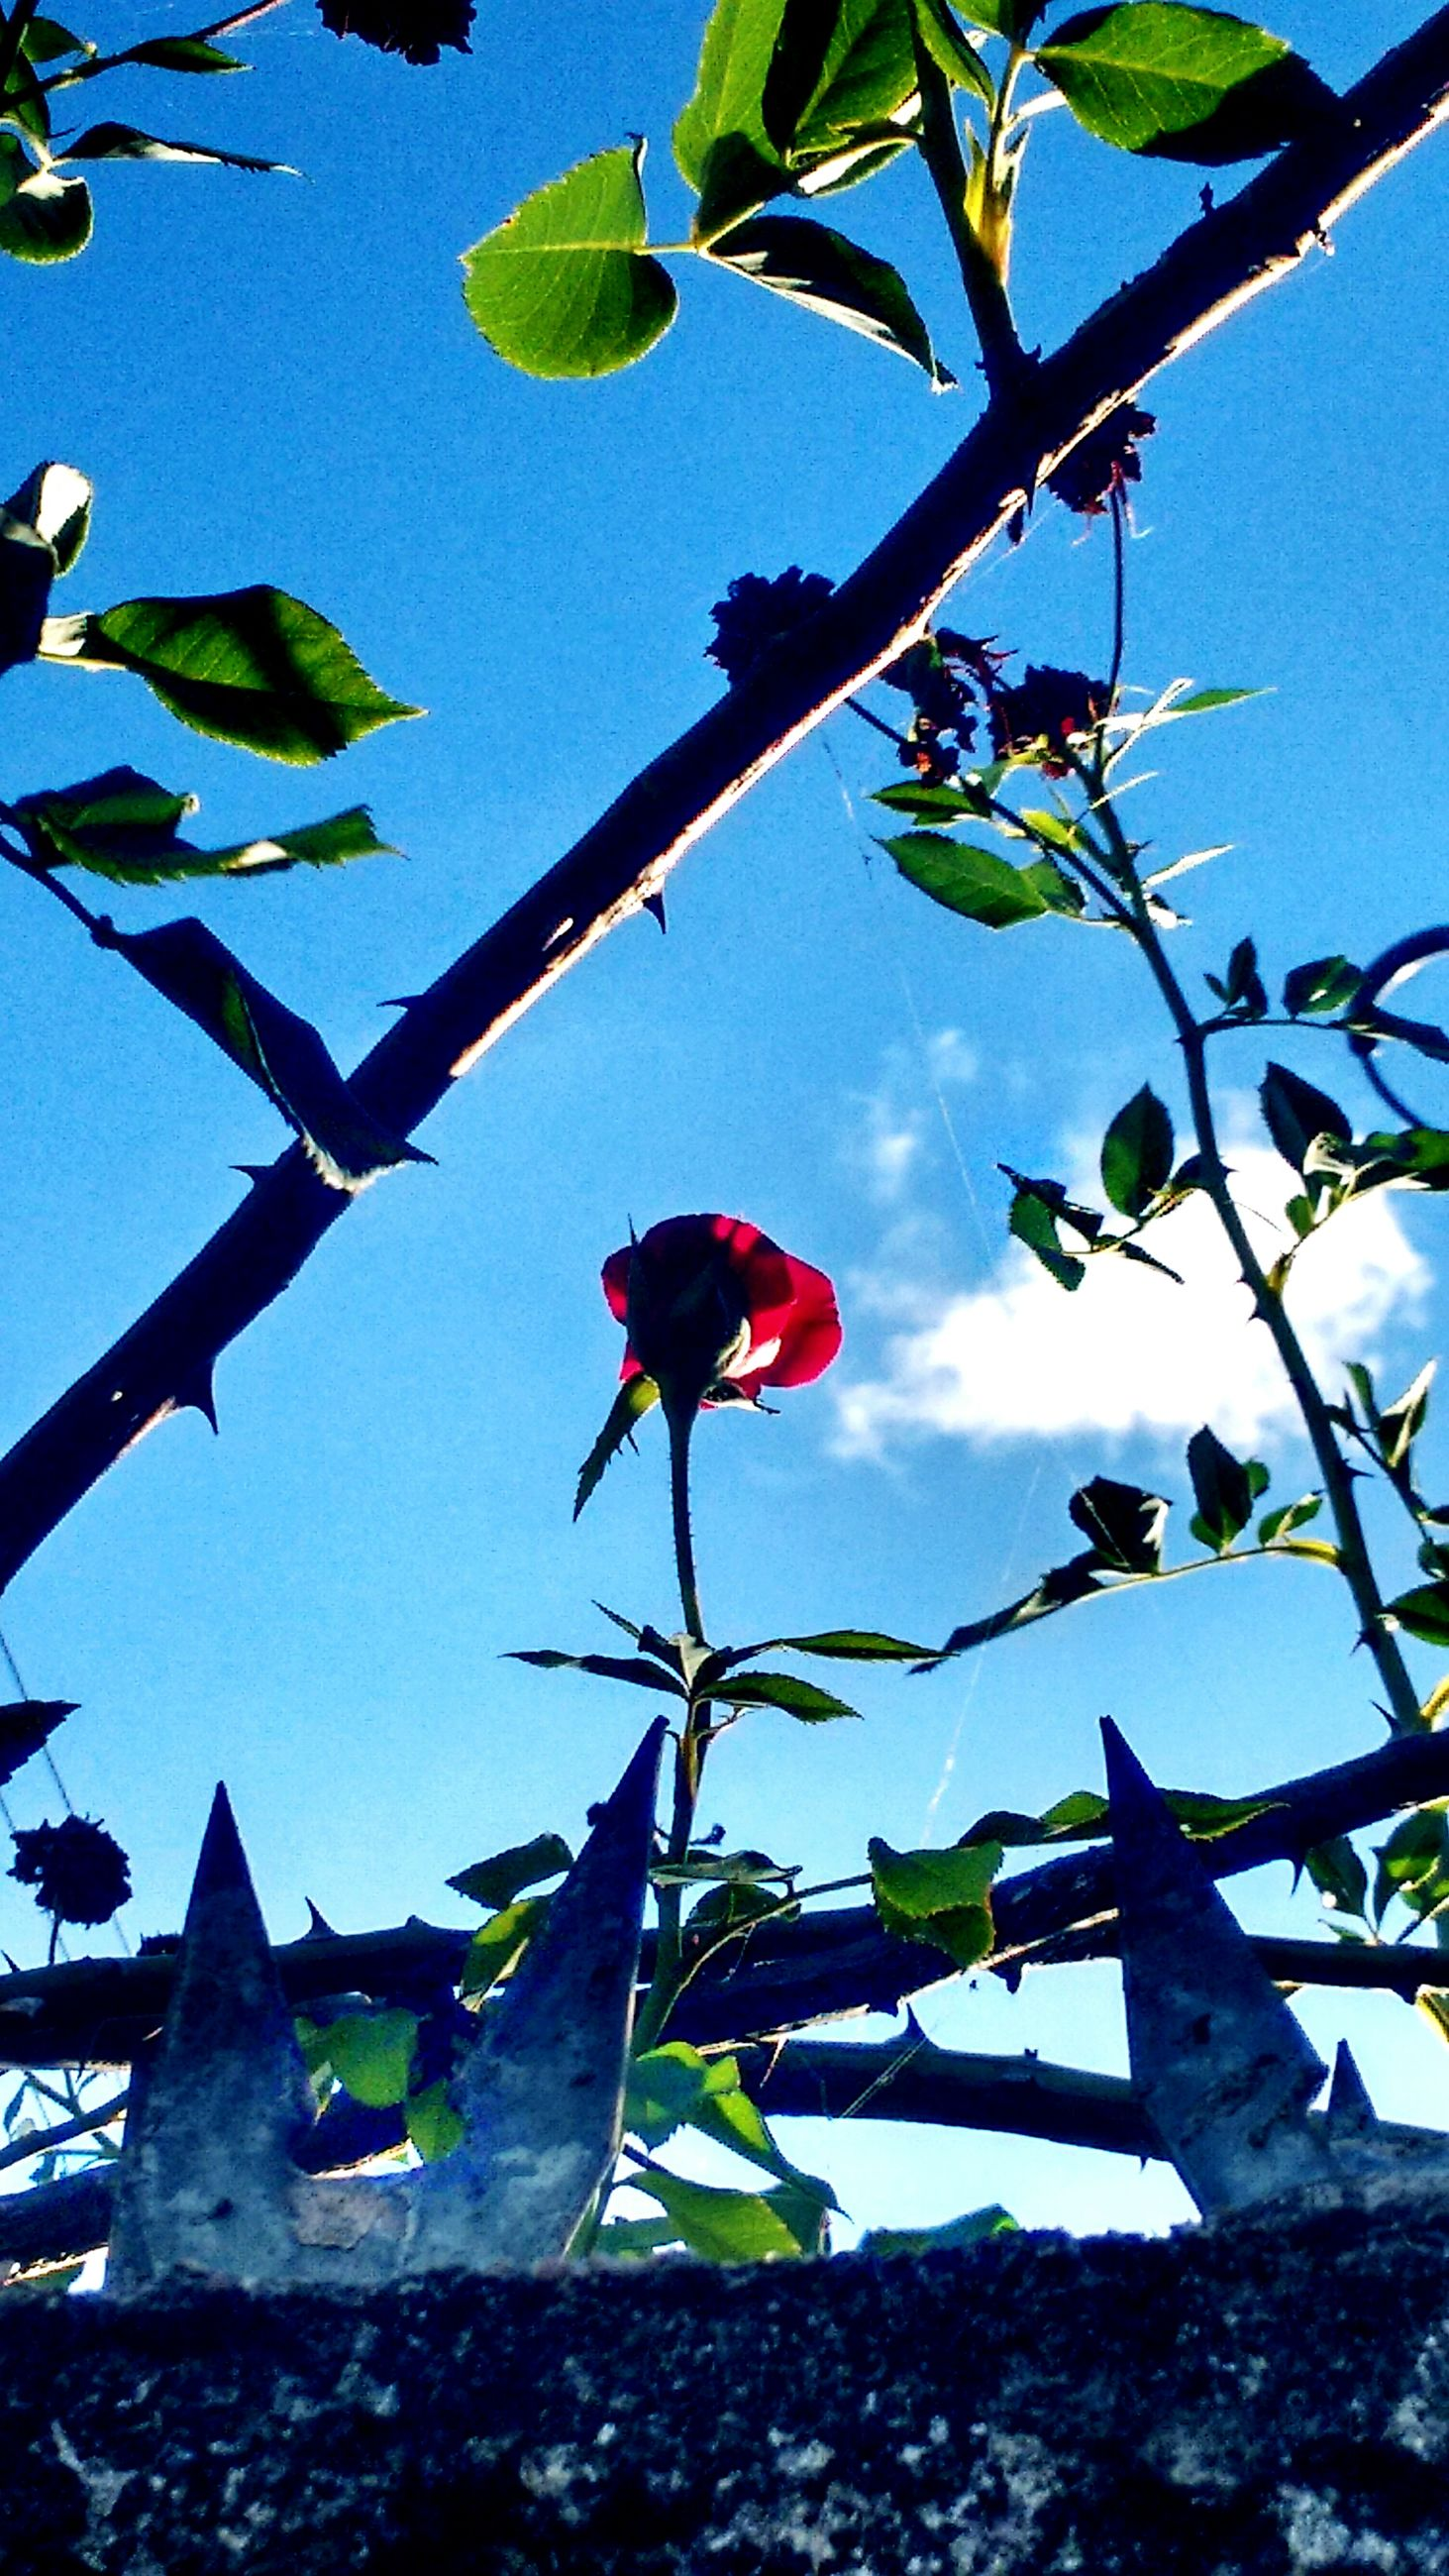 flower, leaf, freshness, low angle view, growth, fragility, plant, branch, petal, nature, clear sky, blooming, sky, beauty in nature, pink color, stem, built structure, day, outdoors, no people